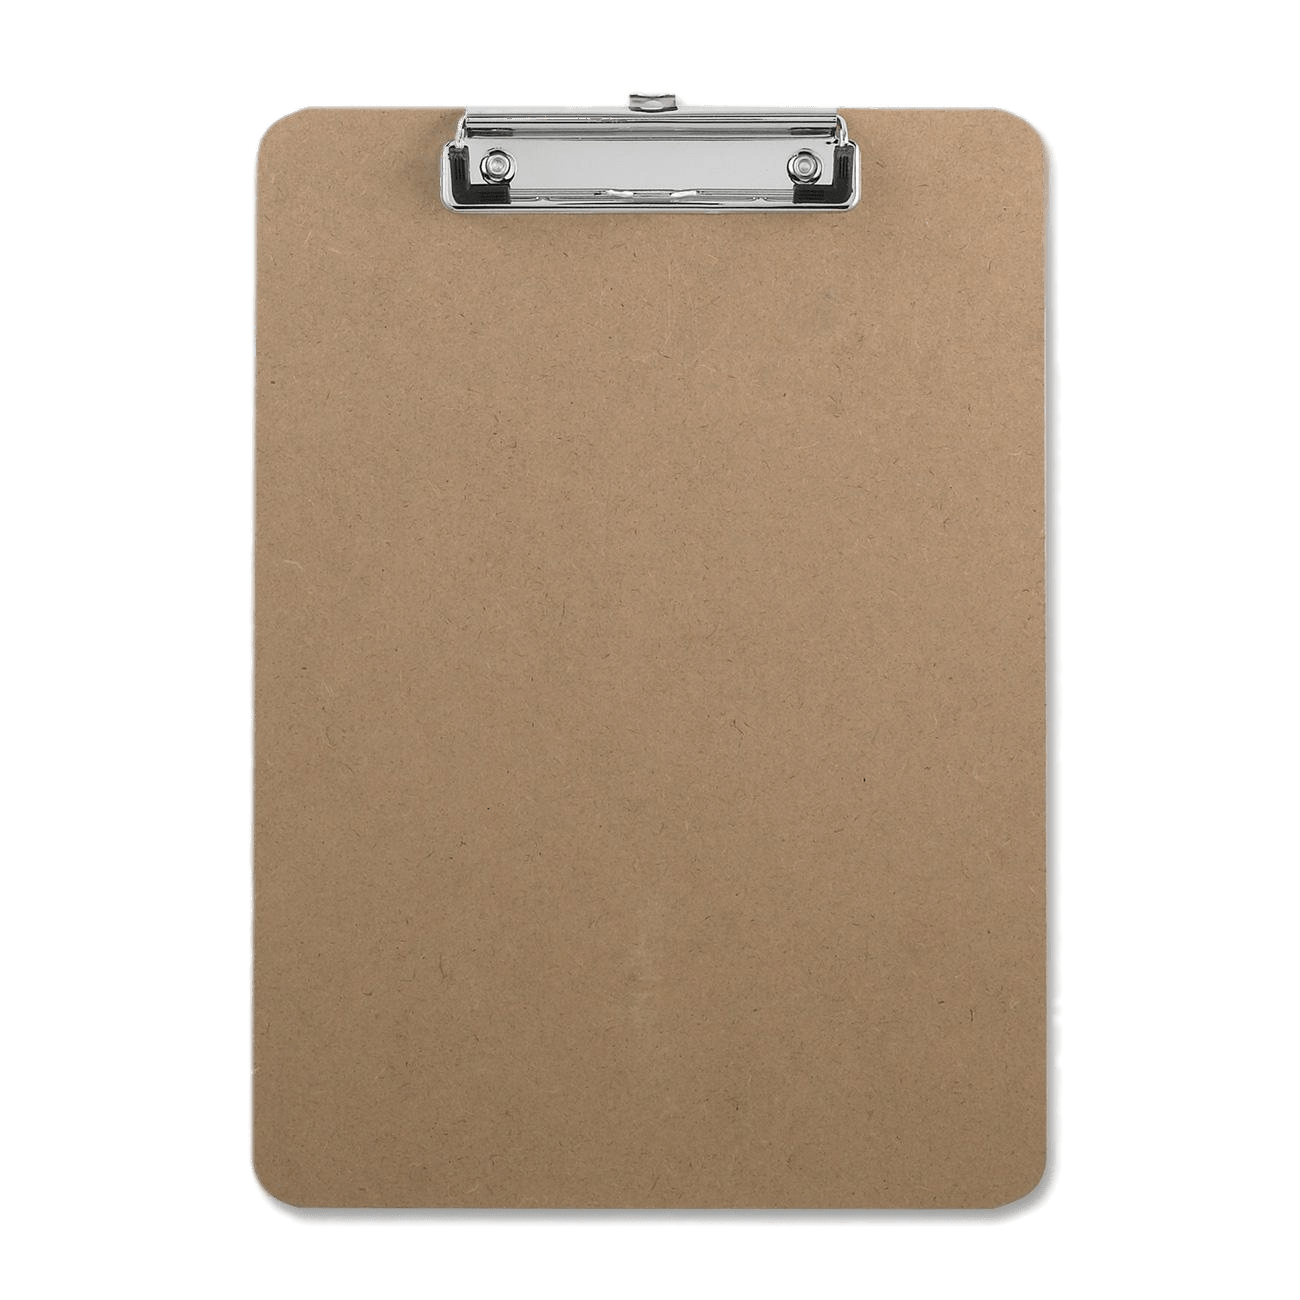 image transparent stock Collection of free download. Board clip transparent